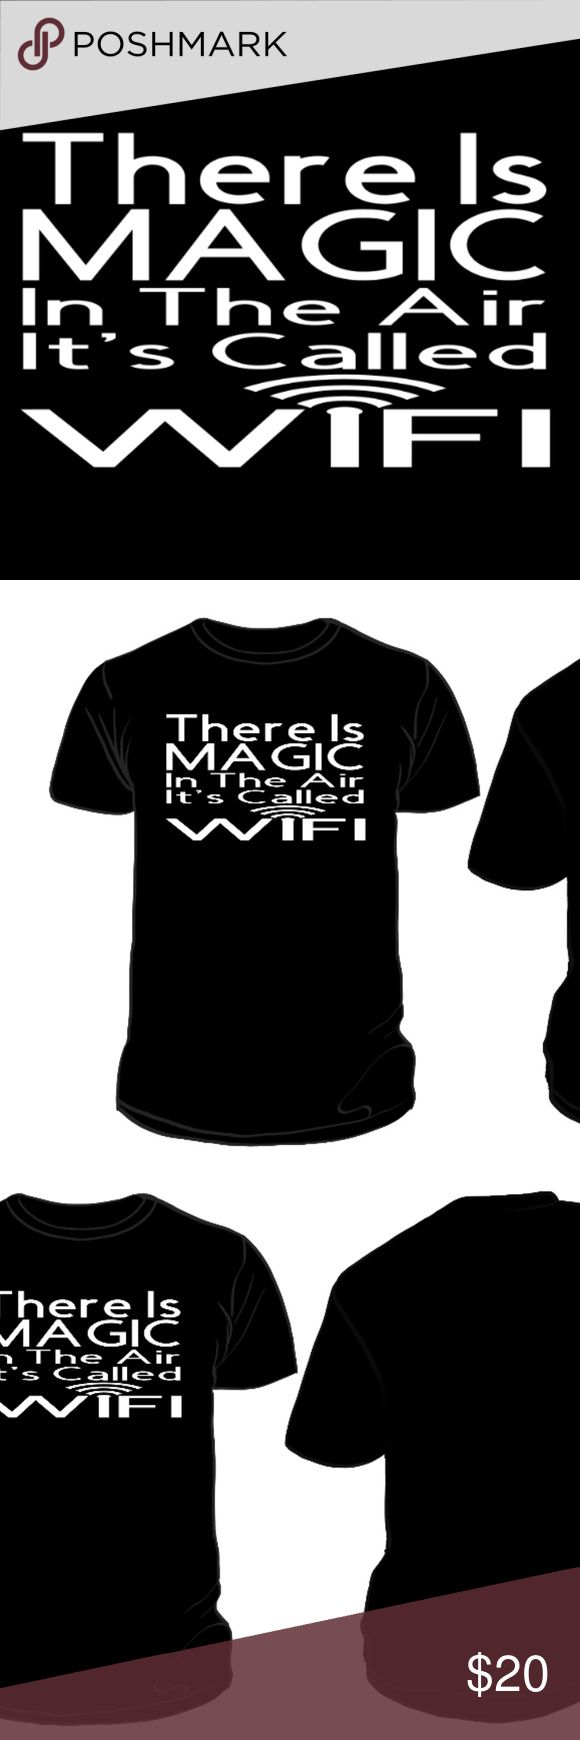 Magic In The Air Reflective Tee Magic In The Air Unisex T-Shirt  VISIBL creates unique, state of the art designs with high-end 100% Made In The USA materials.  - This design meets ANSI 107 and EN471 standards for retroreflectivity, meaning the design reflects light back to the light source.  - The design can be seen from be seen from over 500 feet away. - Perfect for night time, running, biking, clubbing, concerts, and more!  In other words, it is really, extremely reflective! VISIBL Tops…